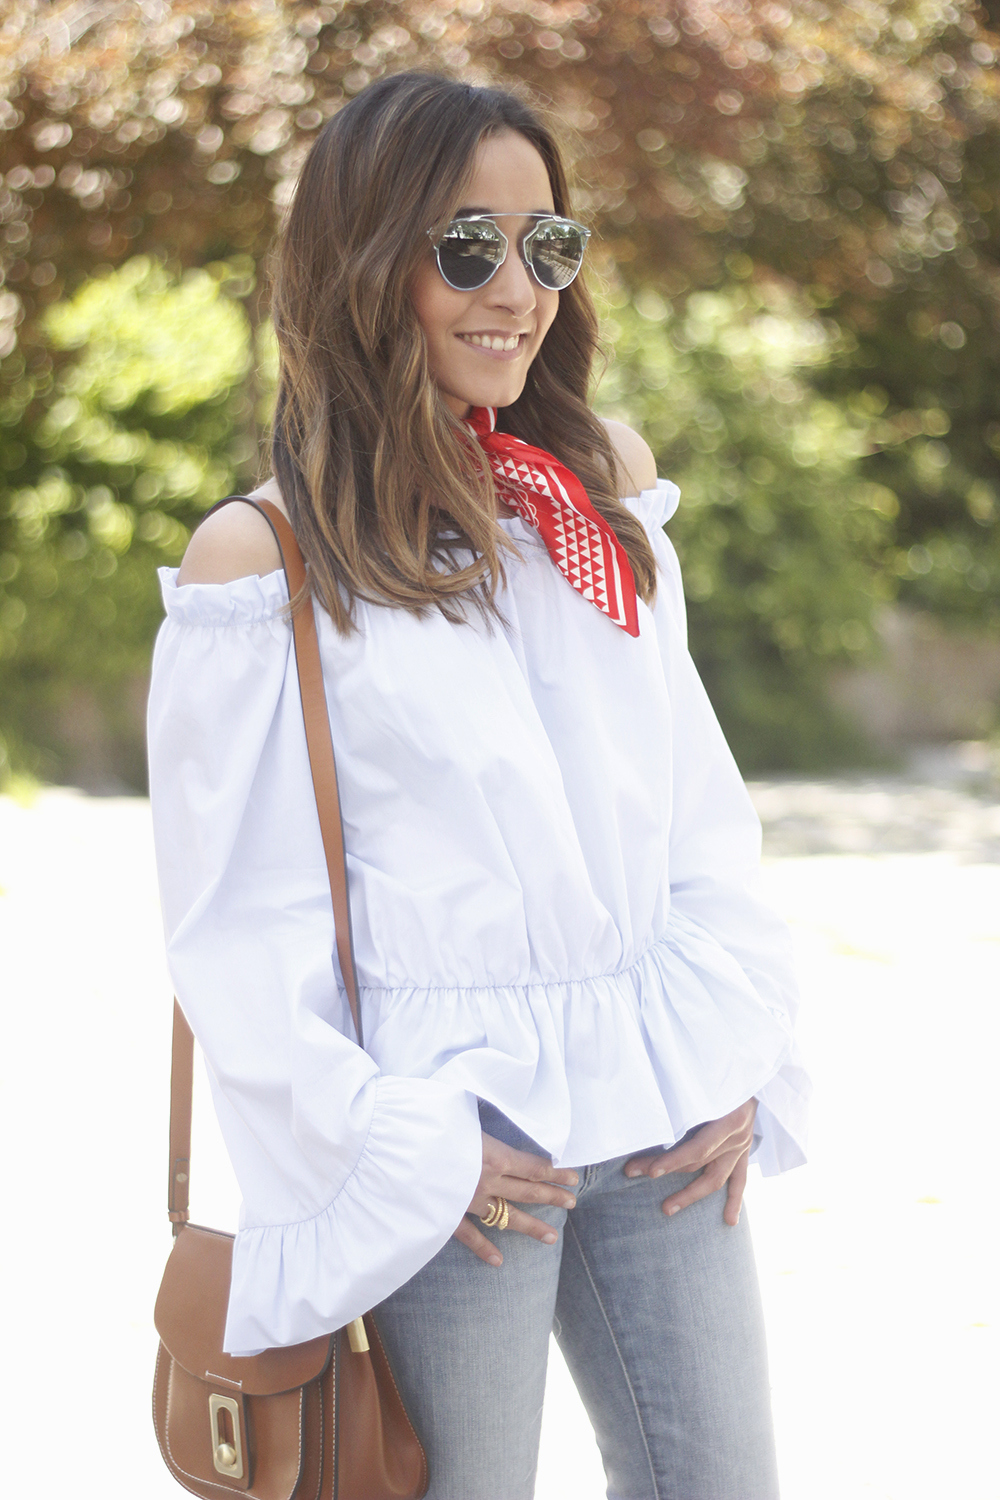 off the shoulders top with bell sleeves red bandana nude heels dior sunglasses spring outfit21